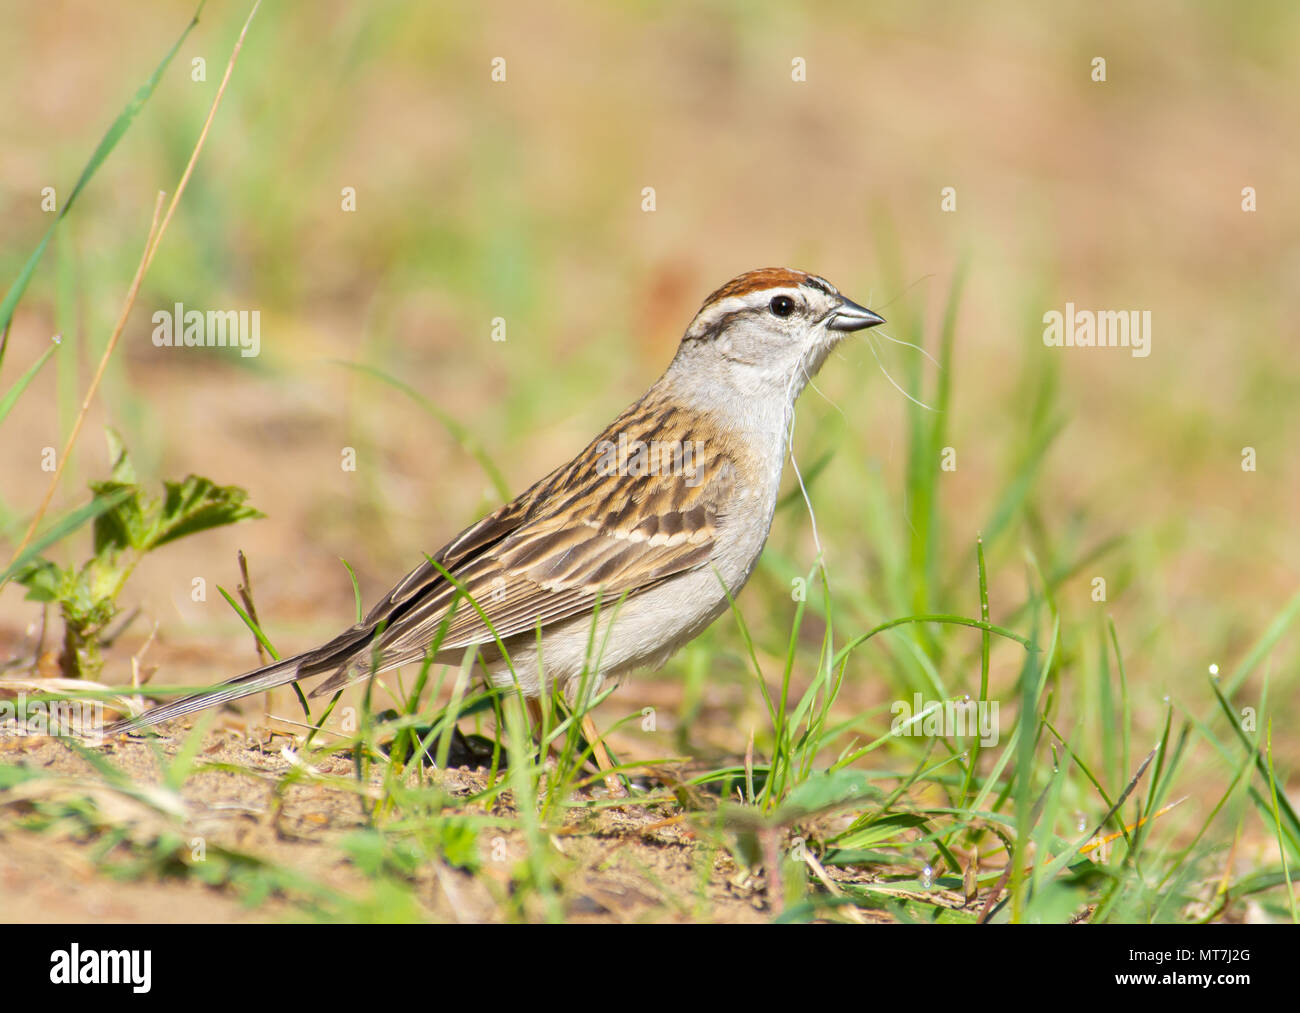 A chipping sparrow, Spizella passerina, looking for nesting material in a nature reserve in central Alberta, Canada. - Stock Image